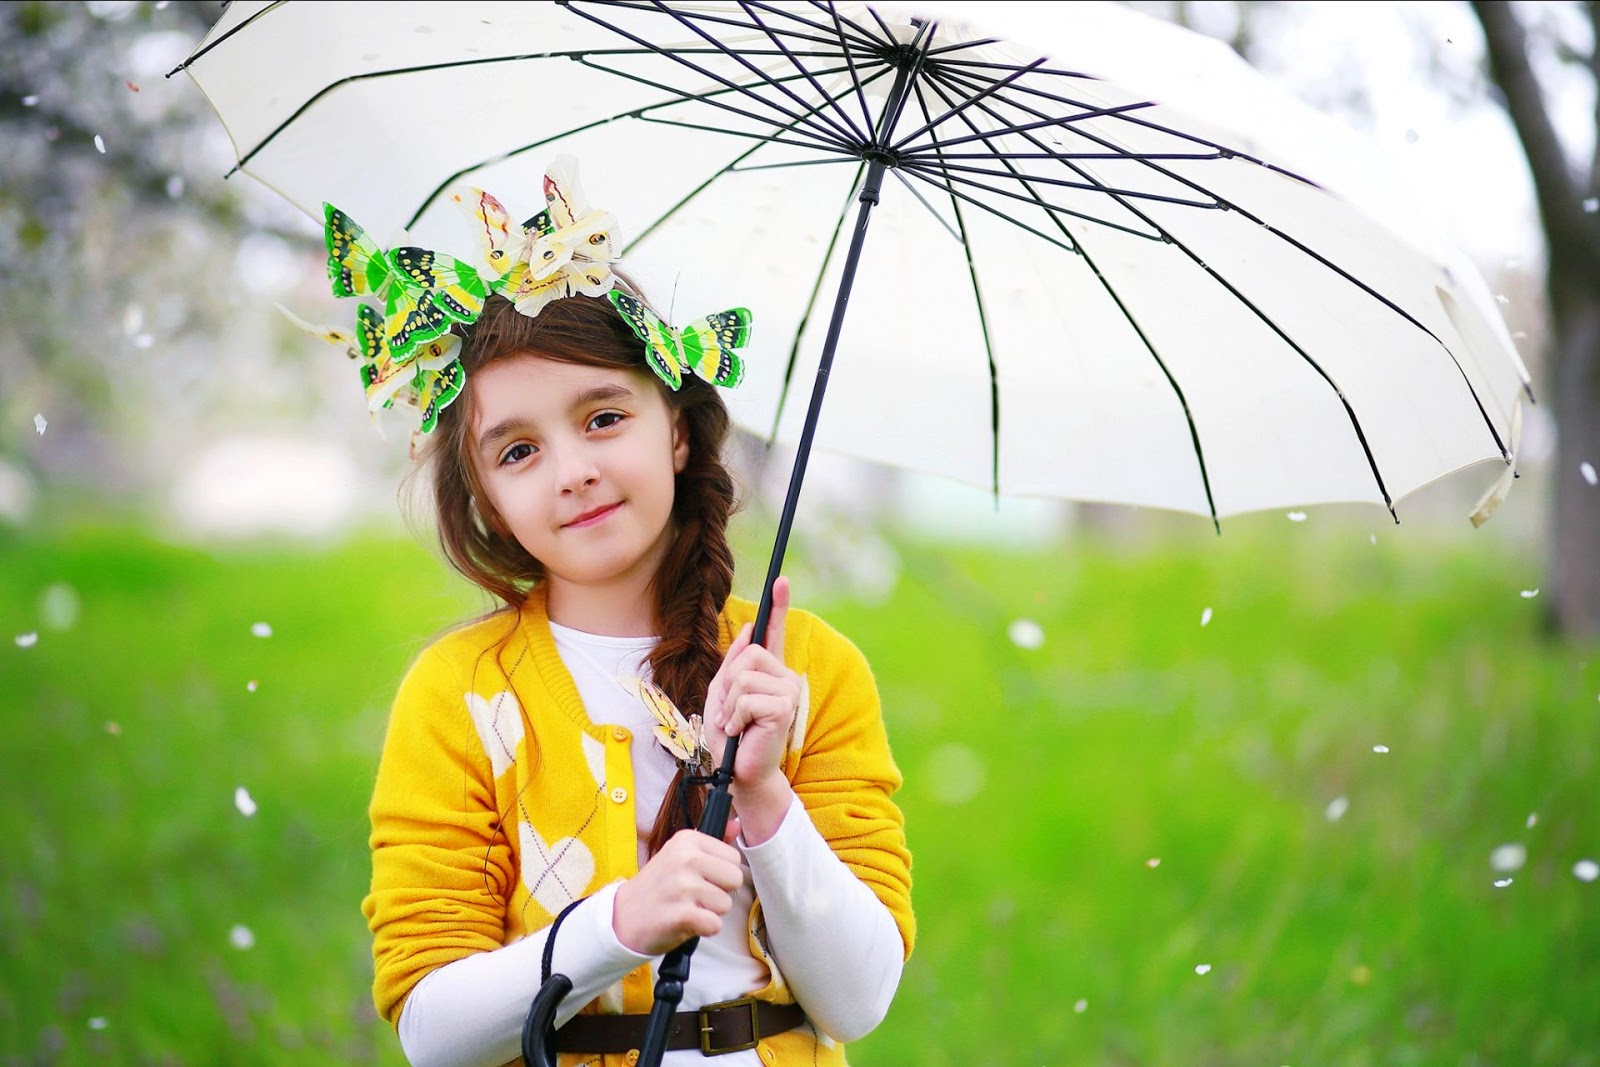 Baby Girls Smiling With Really Cute Way You Will Definitely Love These Collection Of Wallpapers